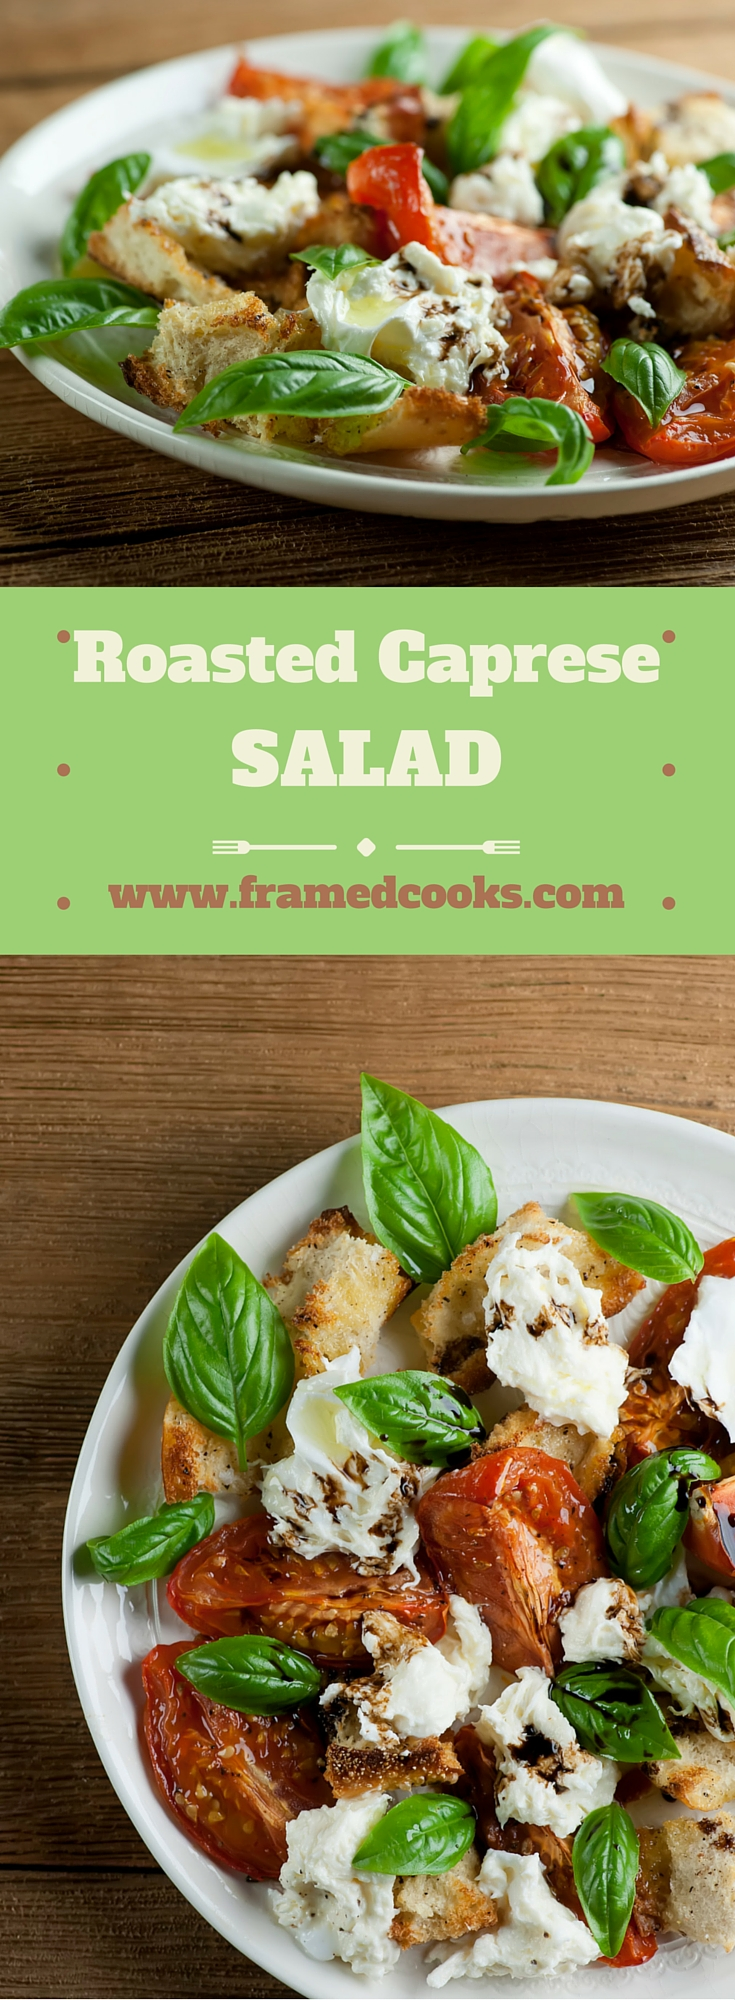 Shake up your favorite summer salad with this recipe for a roasted version of caprese salad that adds bread and burrata cheese to the mix!